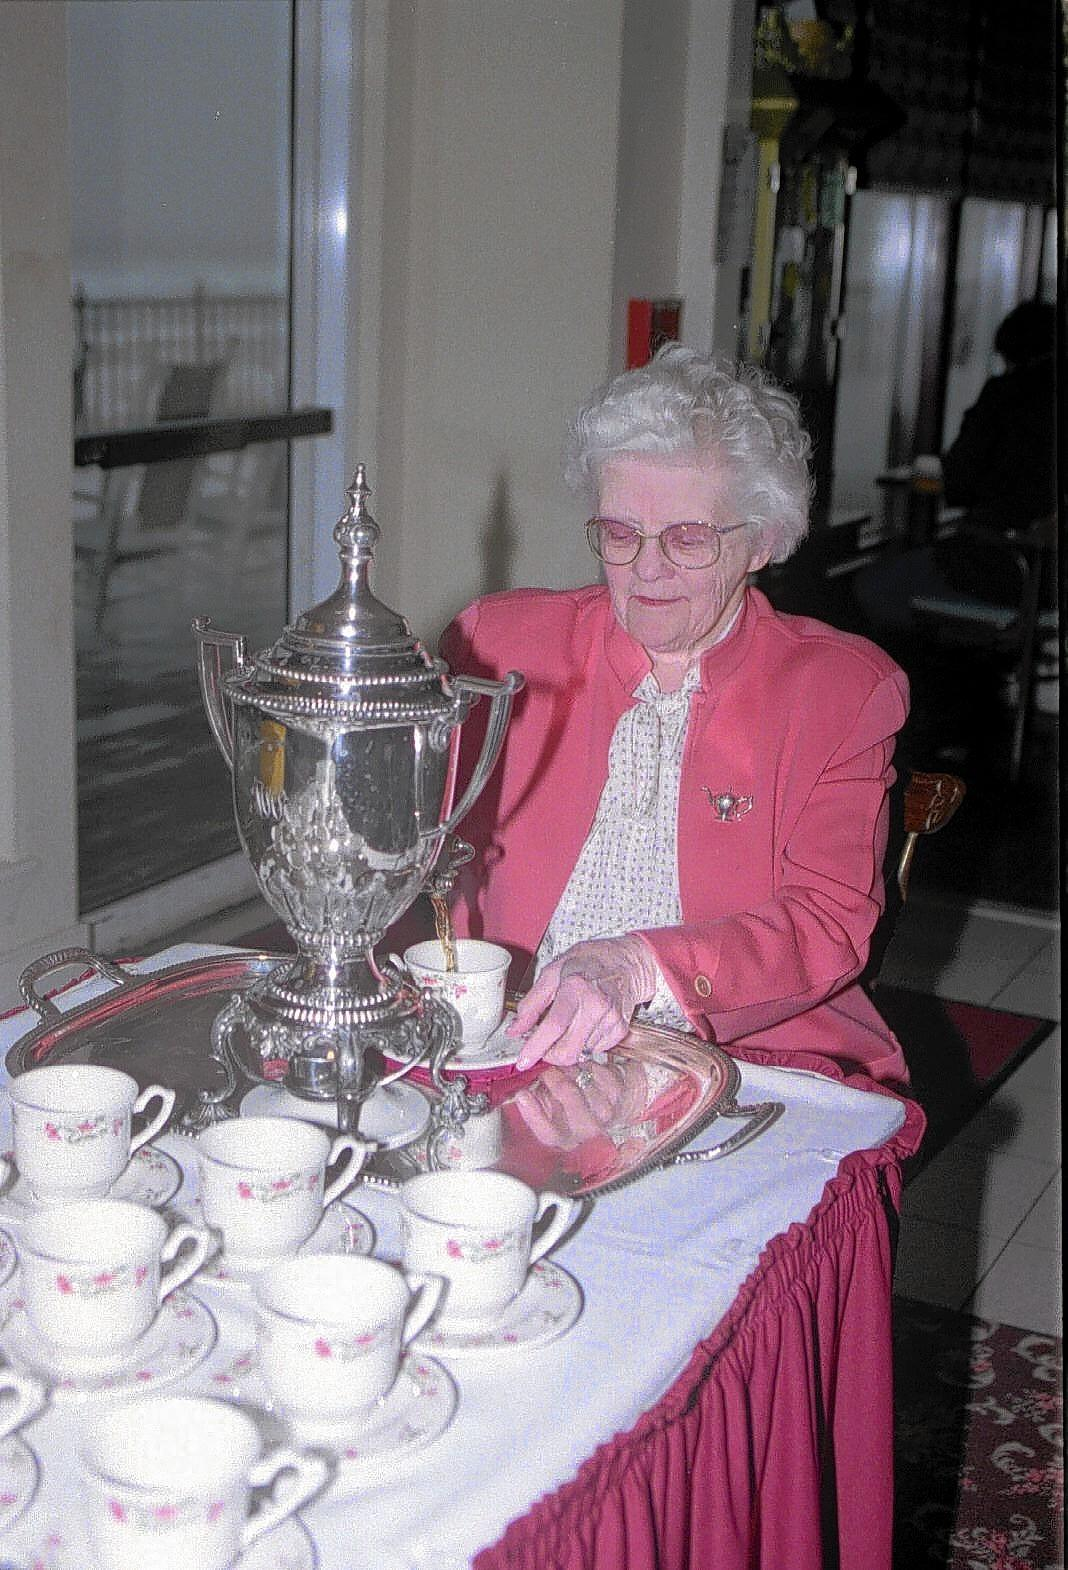 Thelma Conner, owner and founder of Ocean City's Dunes Manor Hotel at 28th Street, served tea to hotel guests and the public nearly every day.